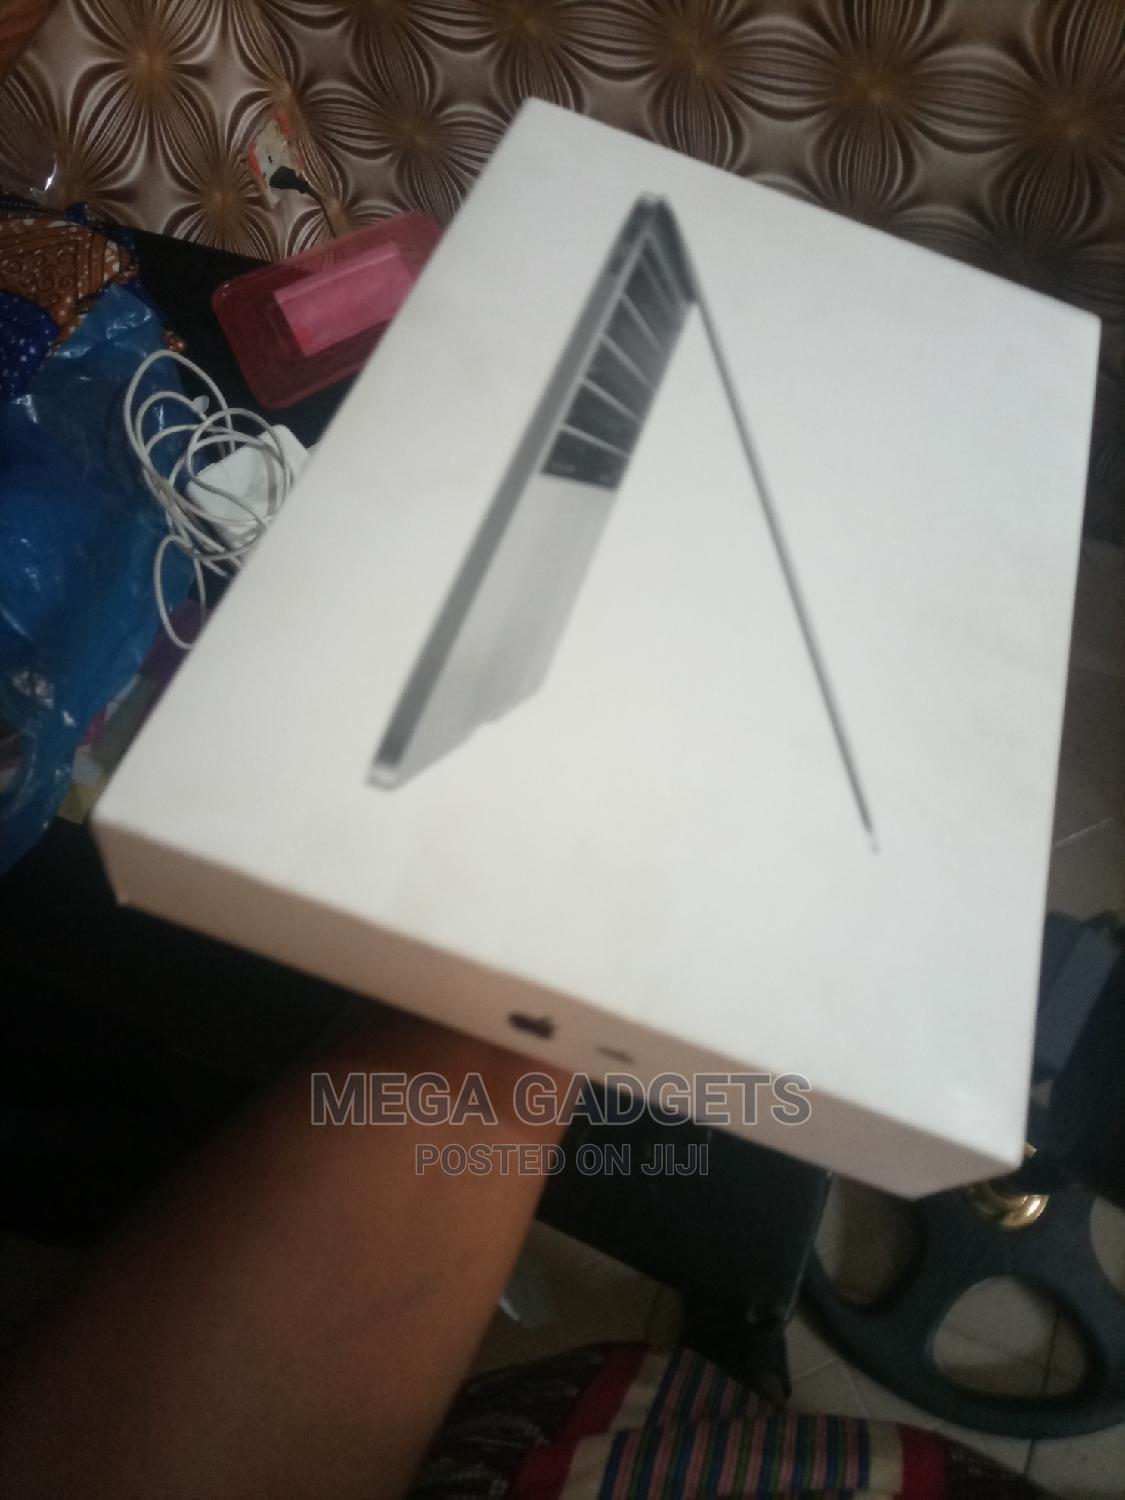 New Laptop Apple MacBook Pro 2017 8GB Intel Core I5 HDD 500GB   Laptops & Computers for sale in Ibadan, Oyo State, Nigeria